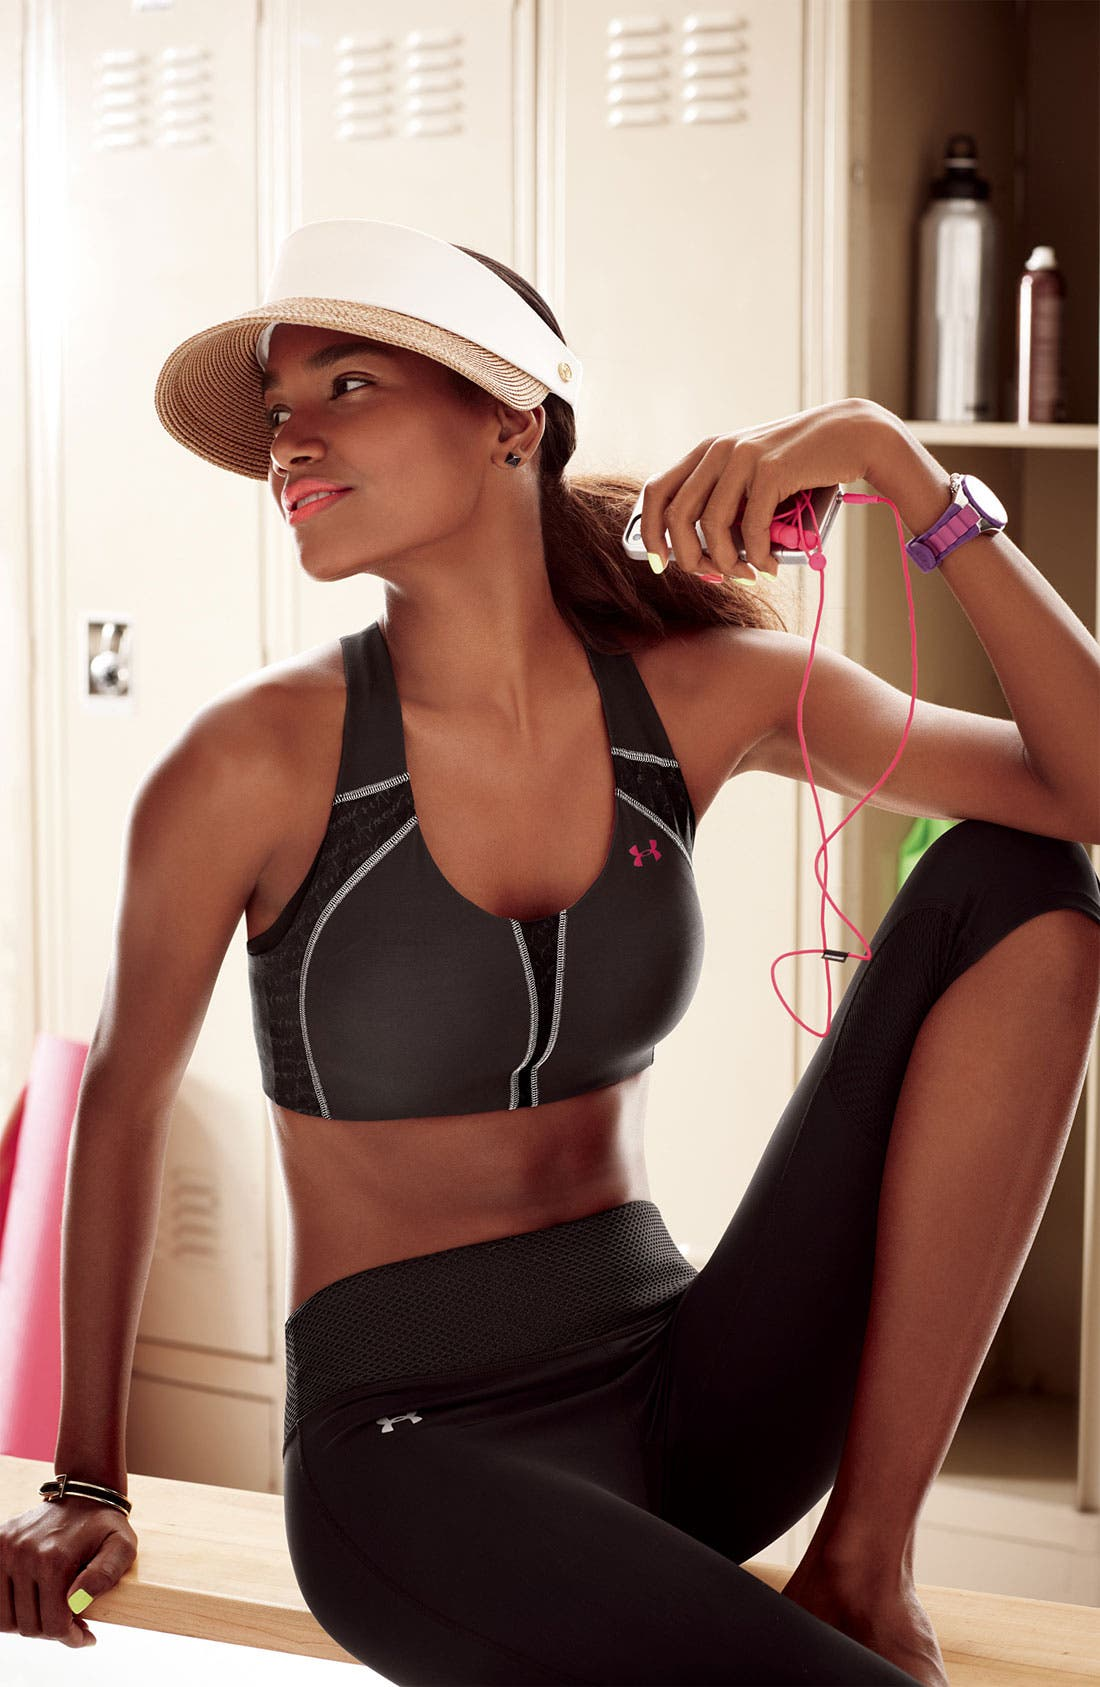 Alternate Image 4  - Under Armour 'Armour' Sports Bra (D Cup)